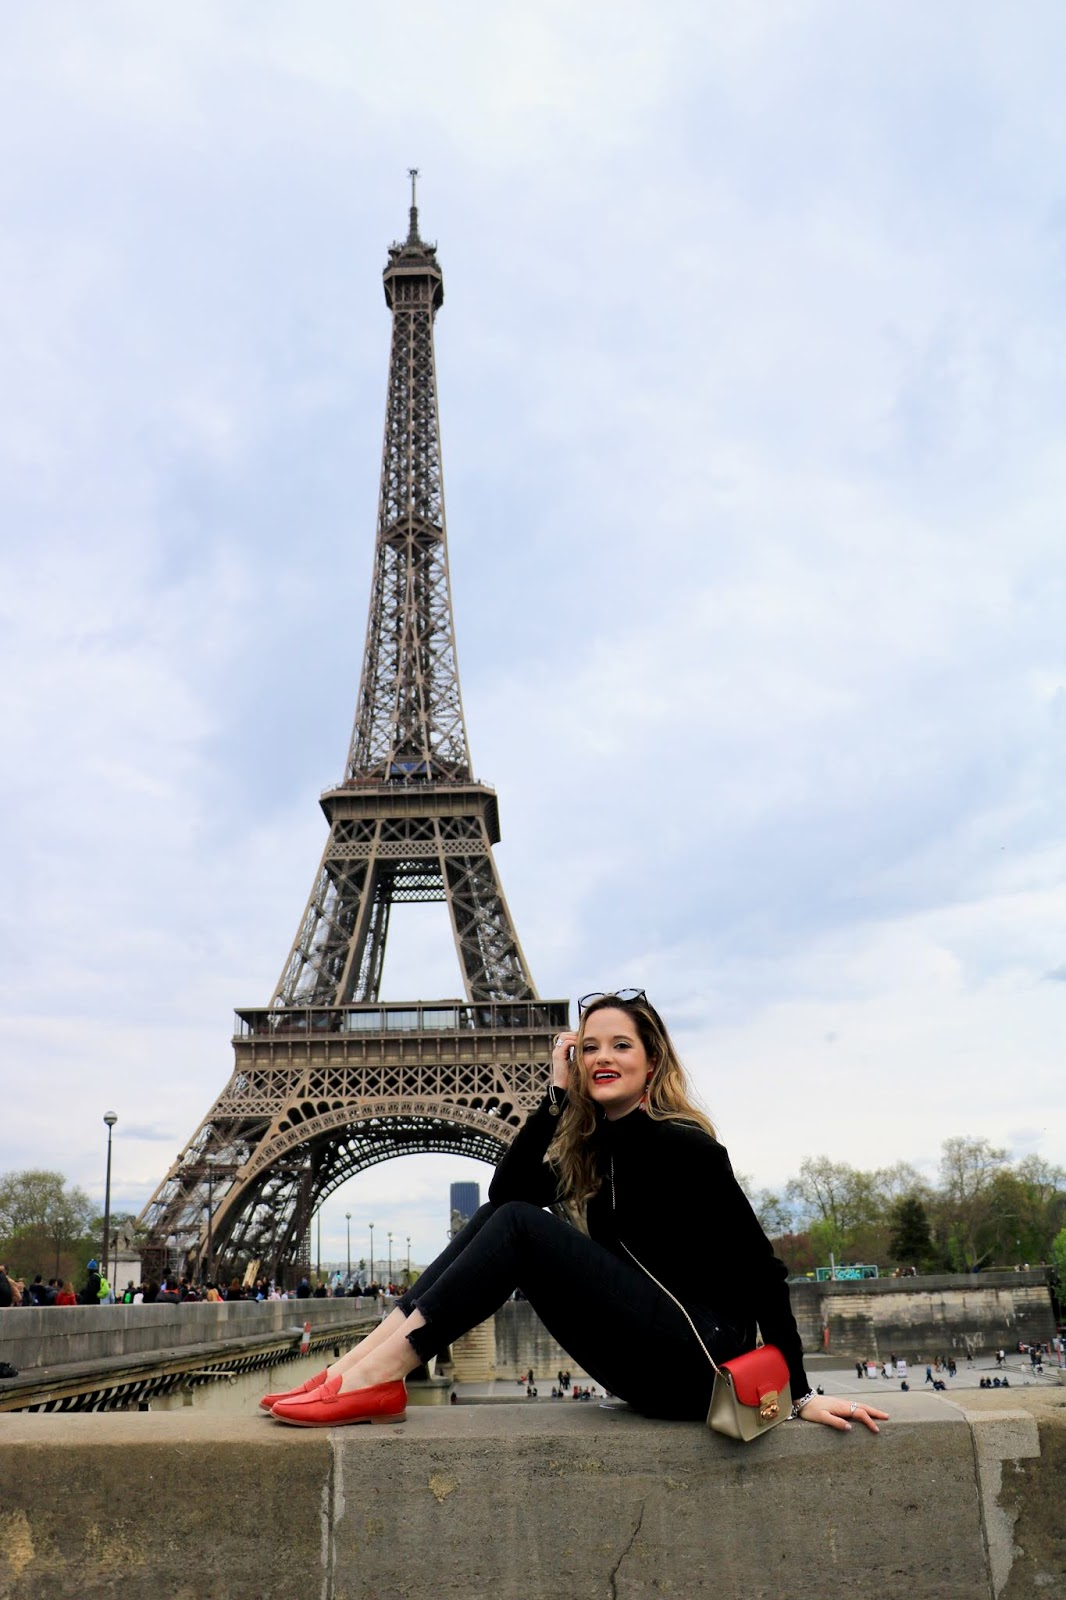 Eiffel-Tower fashion blogger pics